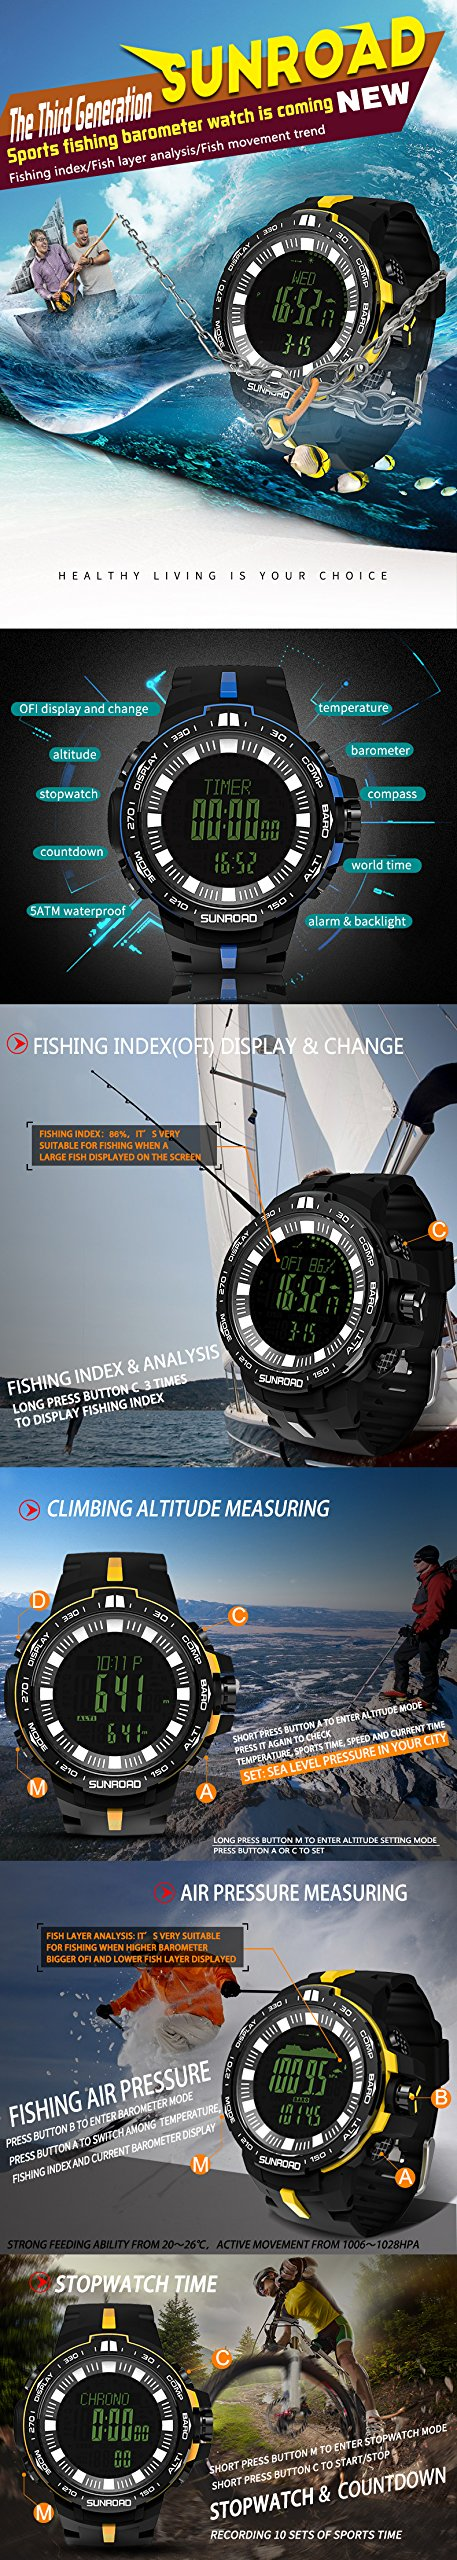 SUNROAD Brand Weather Forecast Altimeter Barometer Thermometer Outdoor Women Watches Compass Waterproof Fishing Watch Men FR861 by YARUIFANSEN